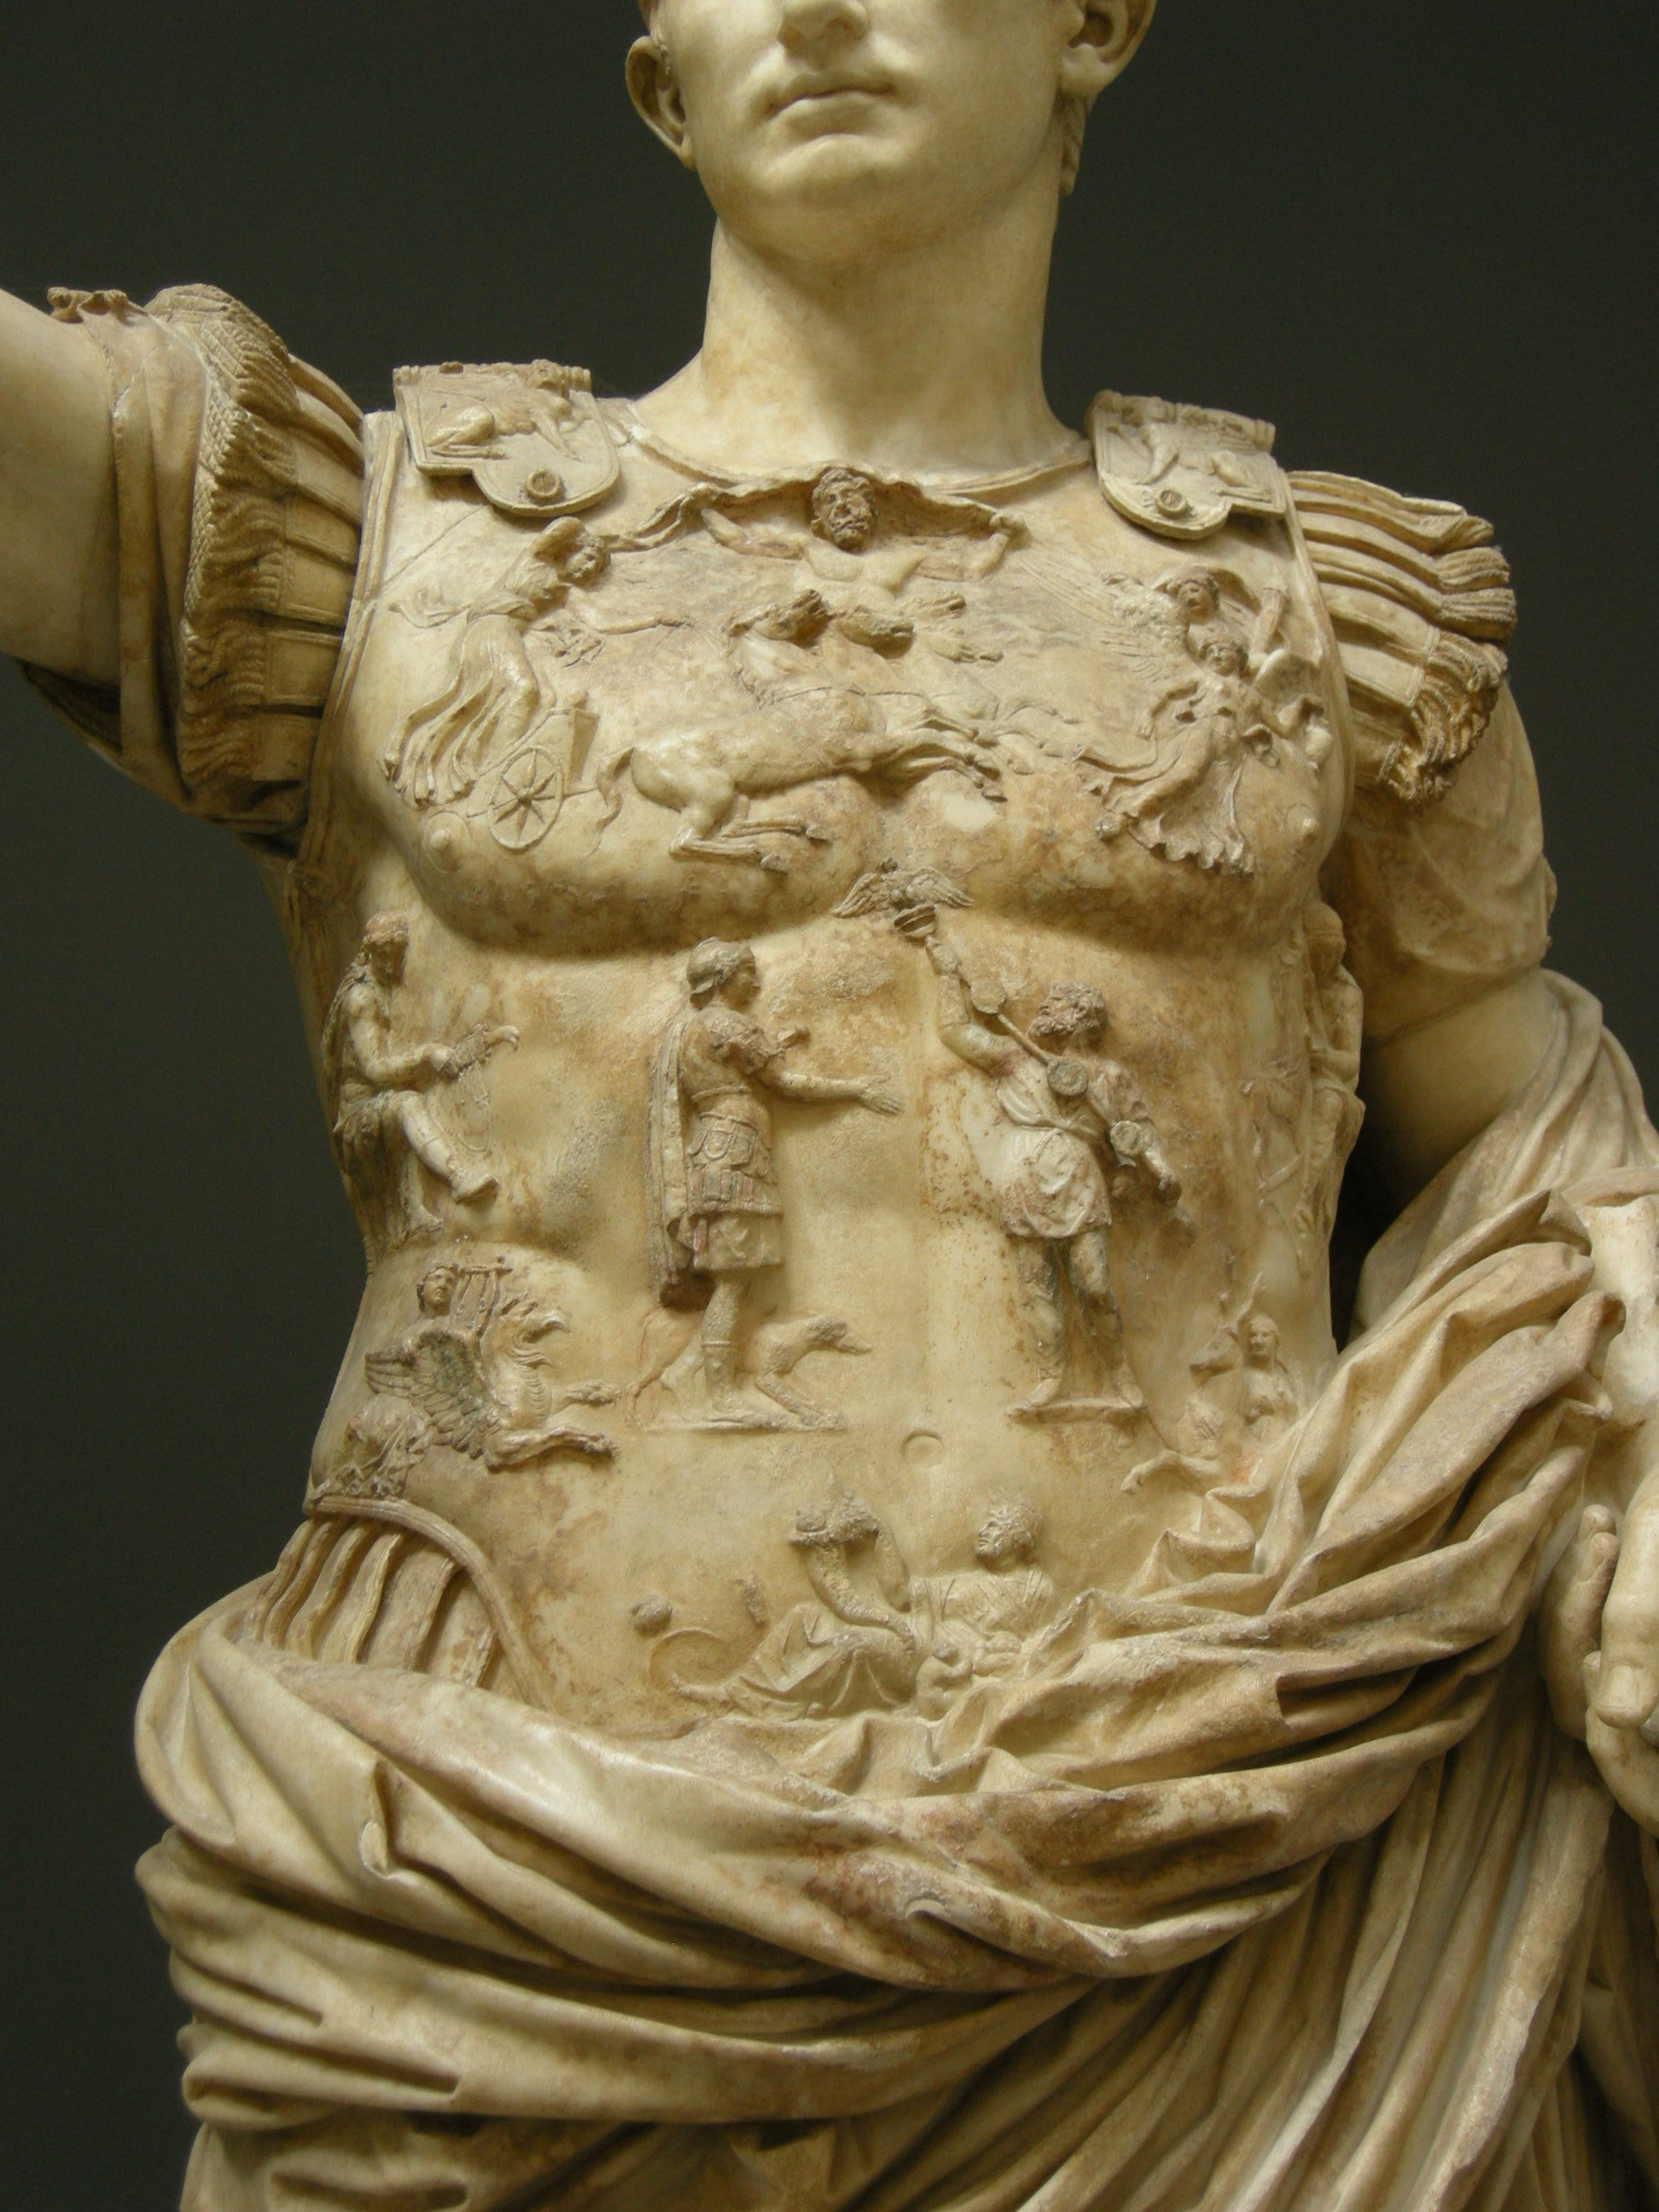 the discovery and significance of the sculpture of augustus of prima porta in 1963